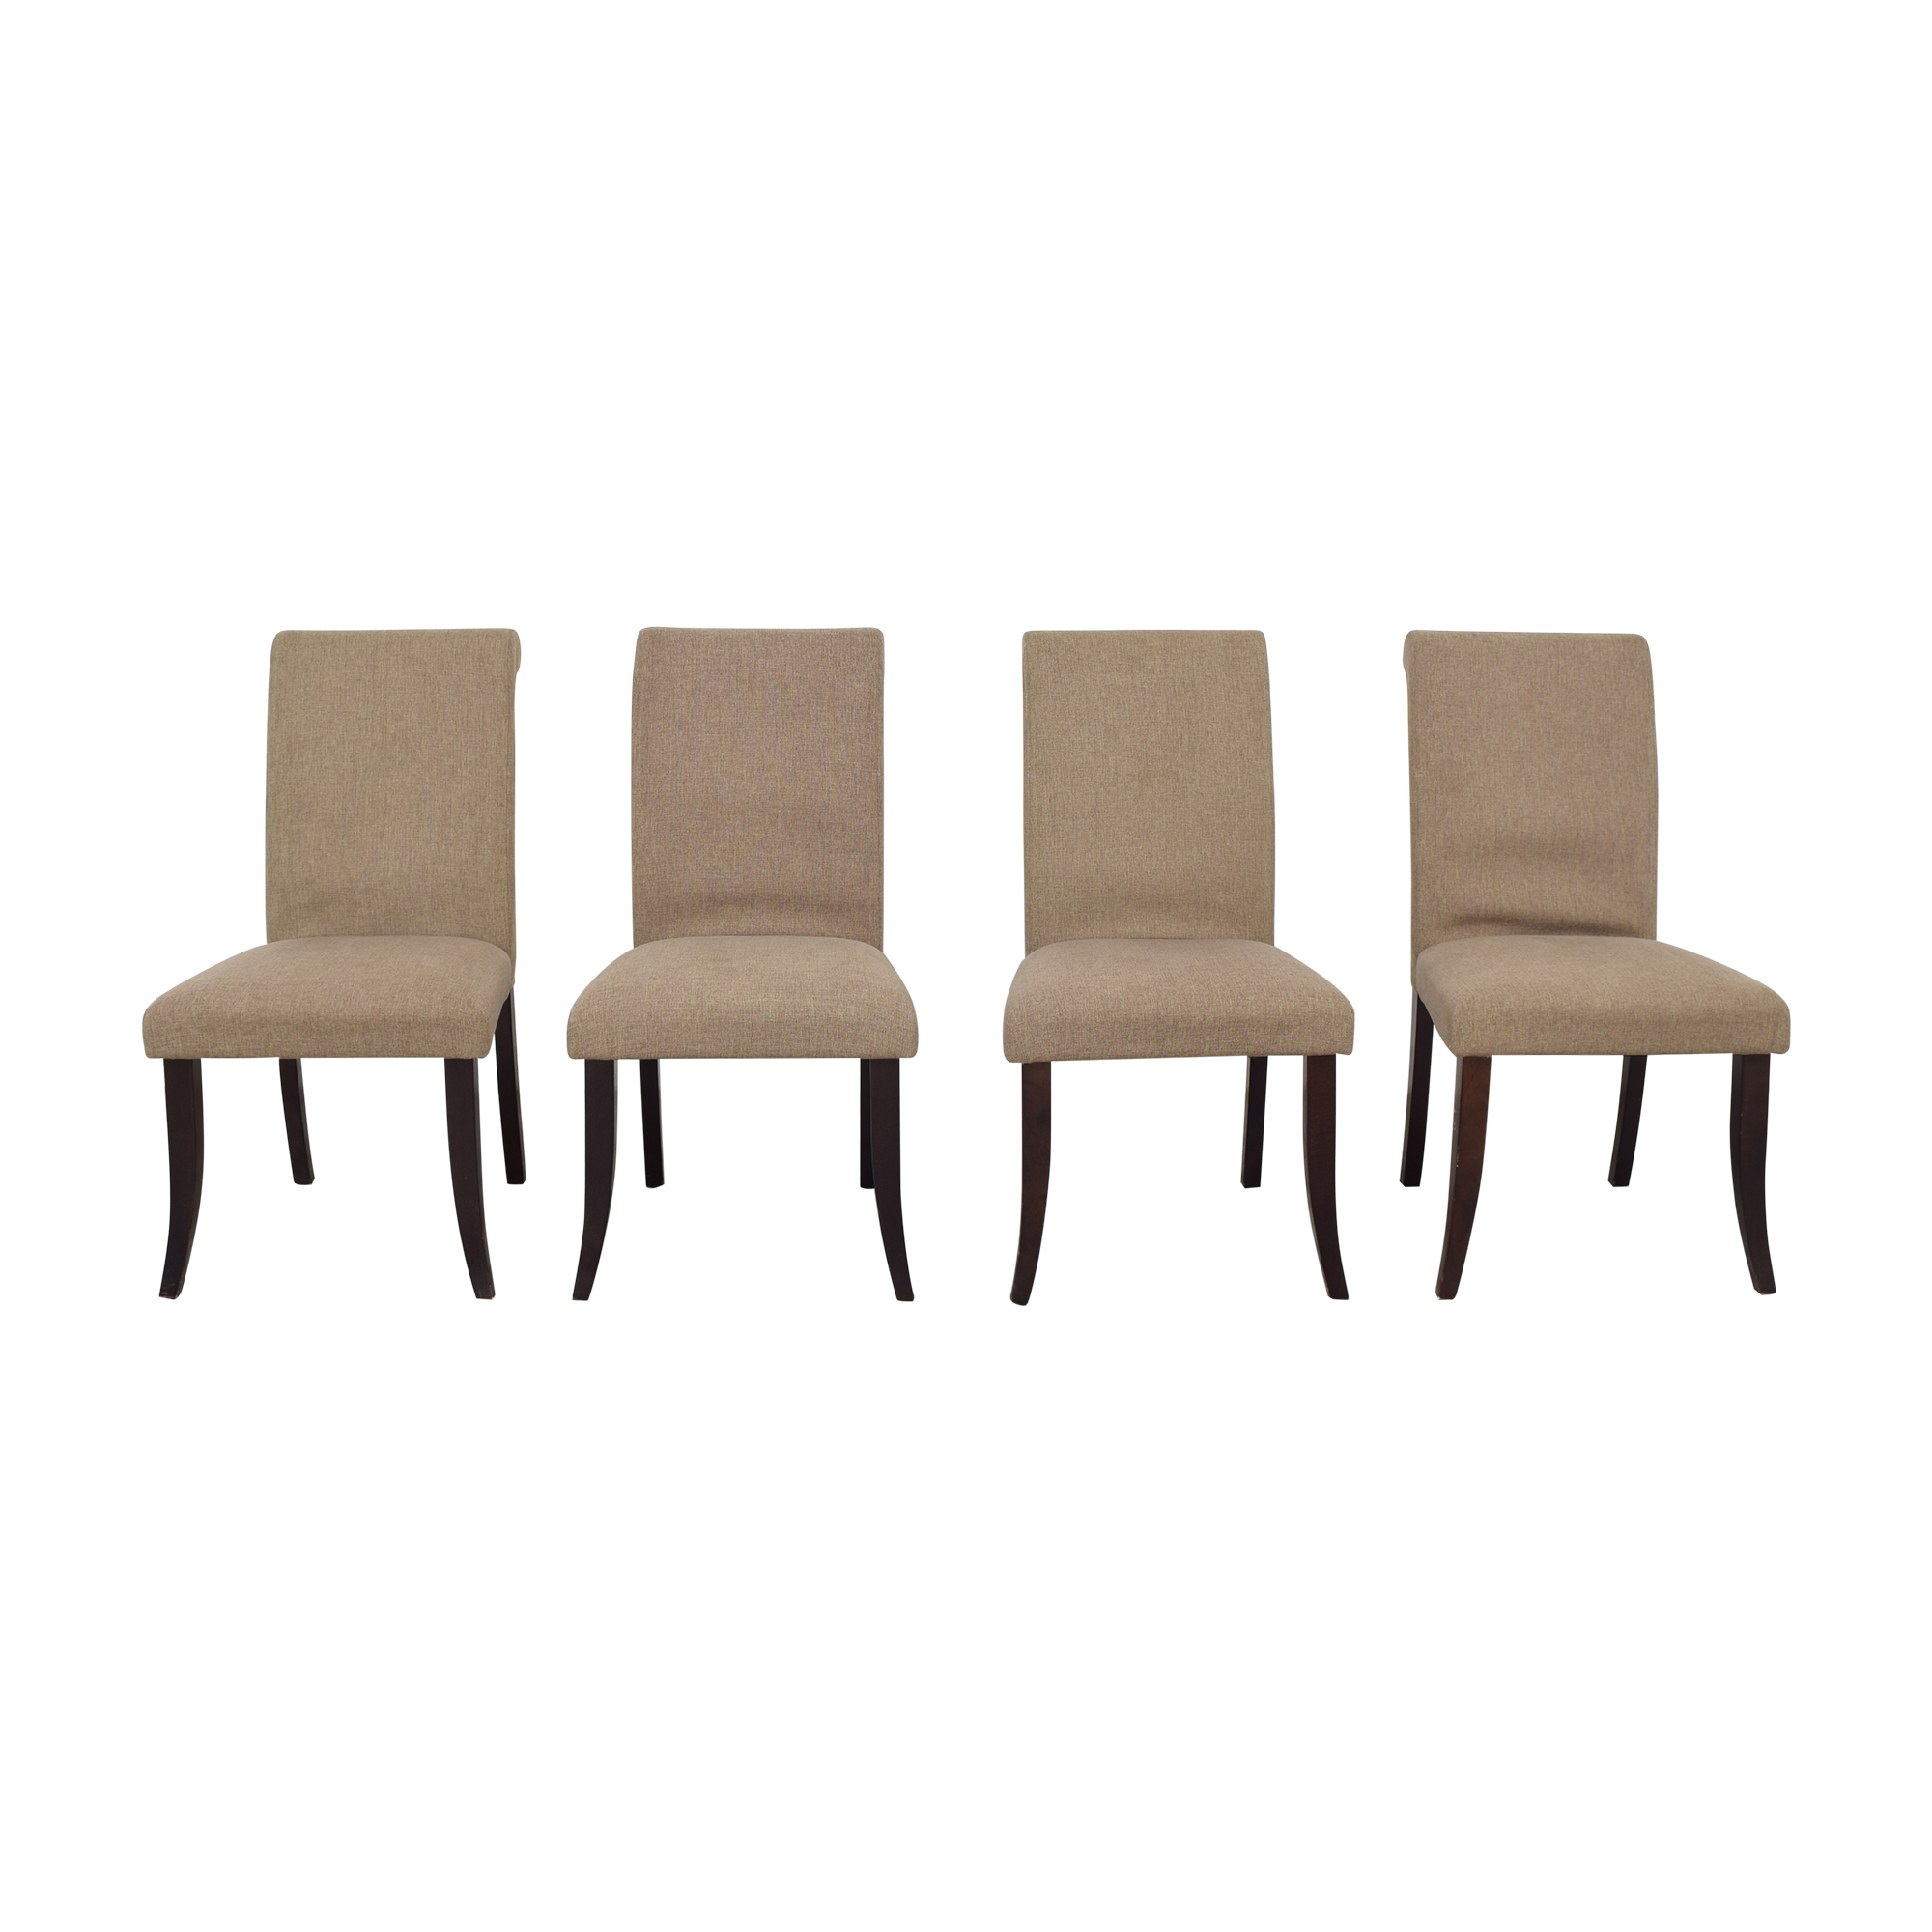 buy Macy's Dining Chairs Macy's Chairs